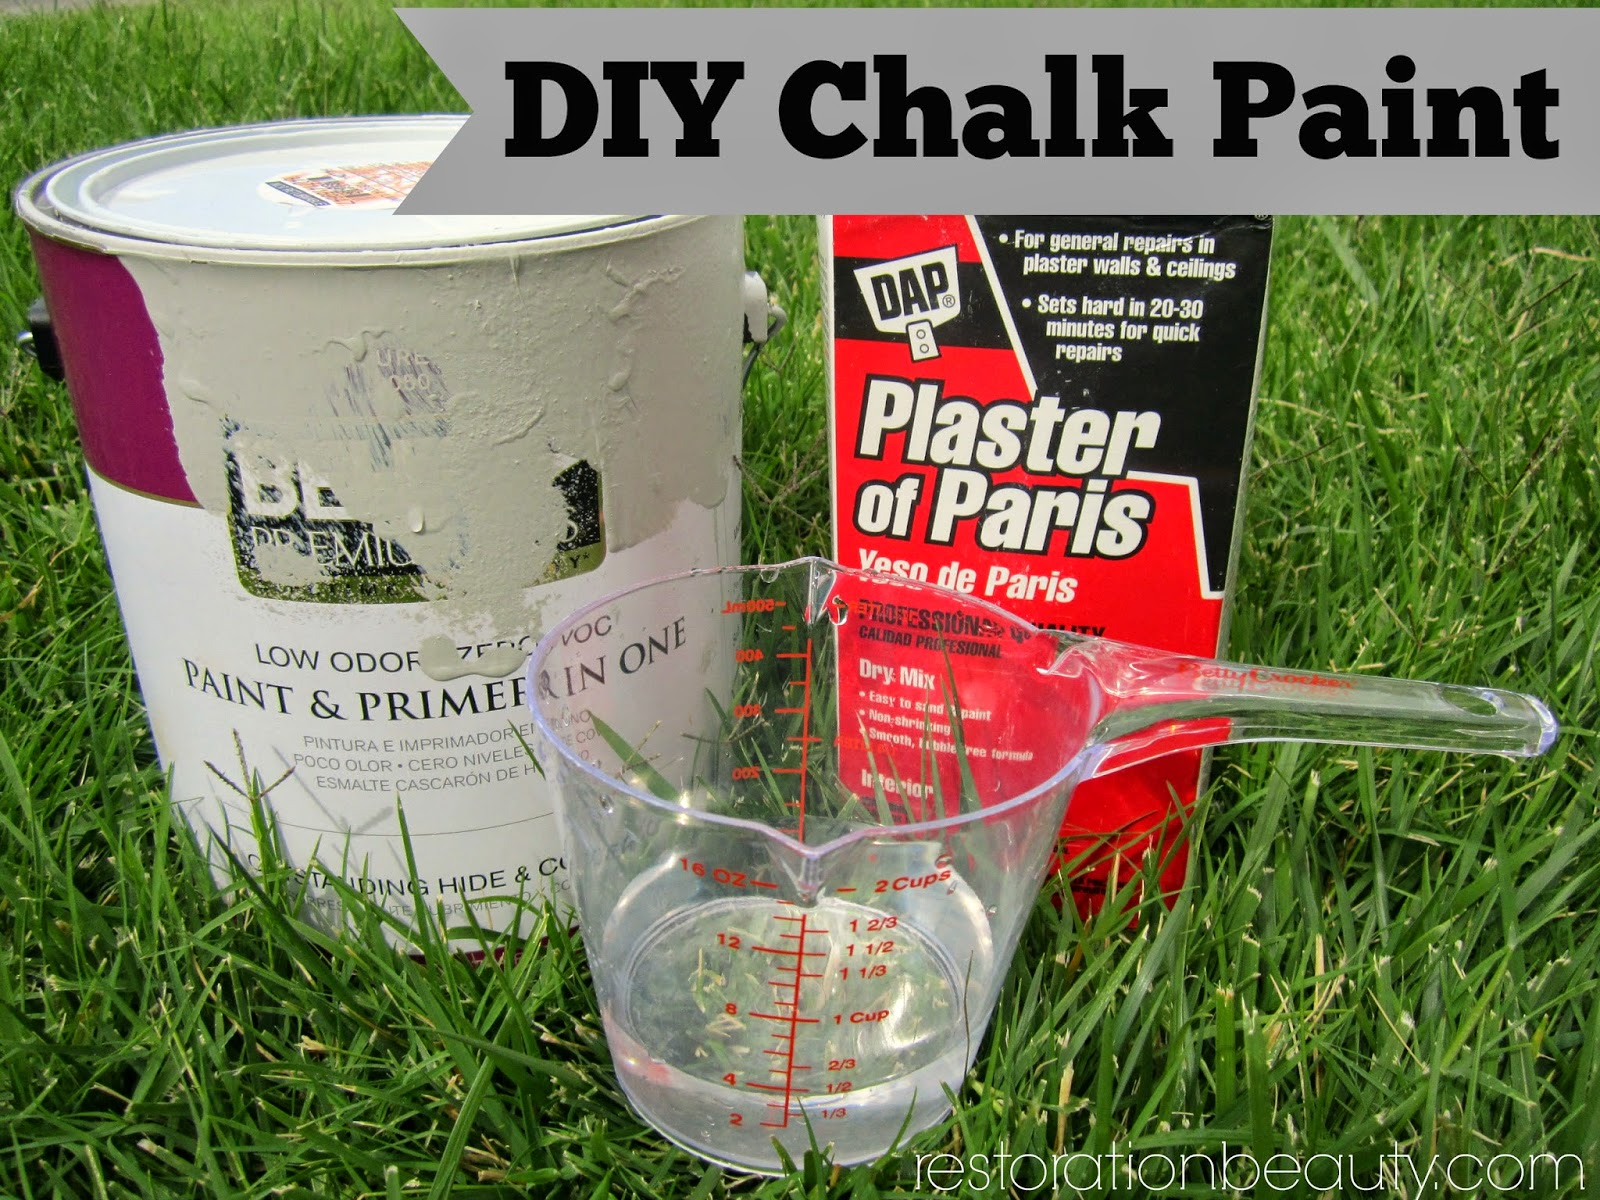 WHAT YOU NEED TO MAKE YOUR OWN CHALK PAINT